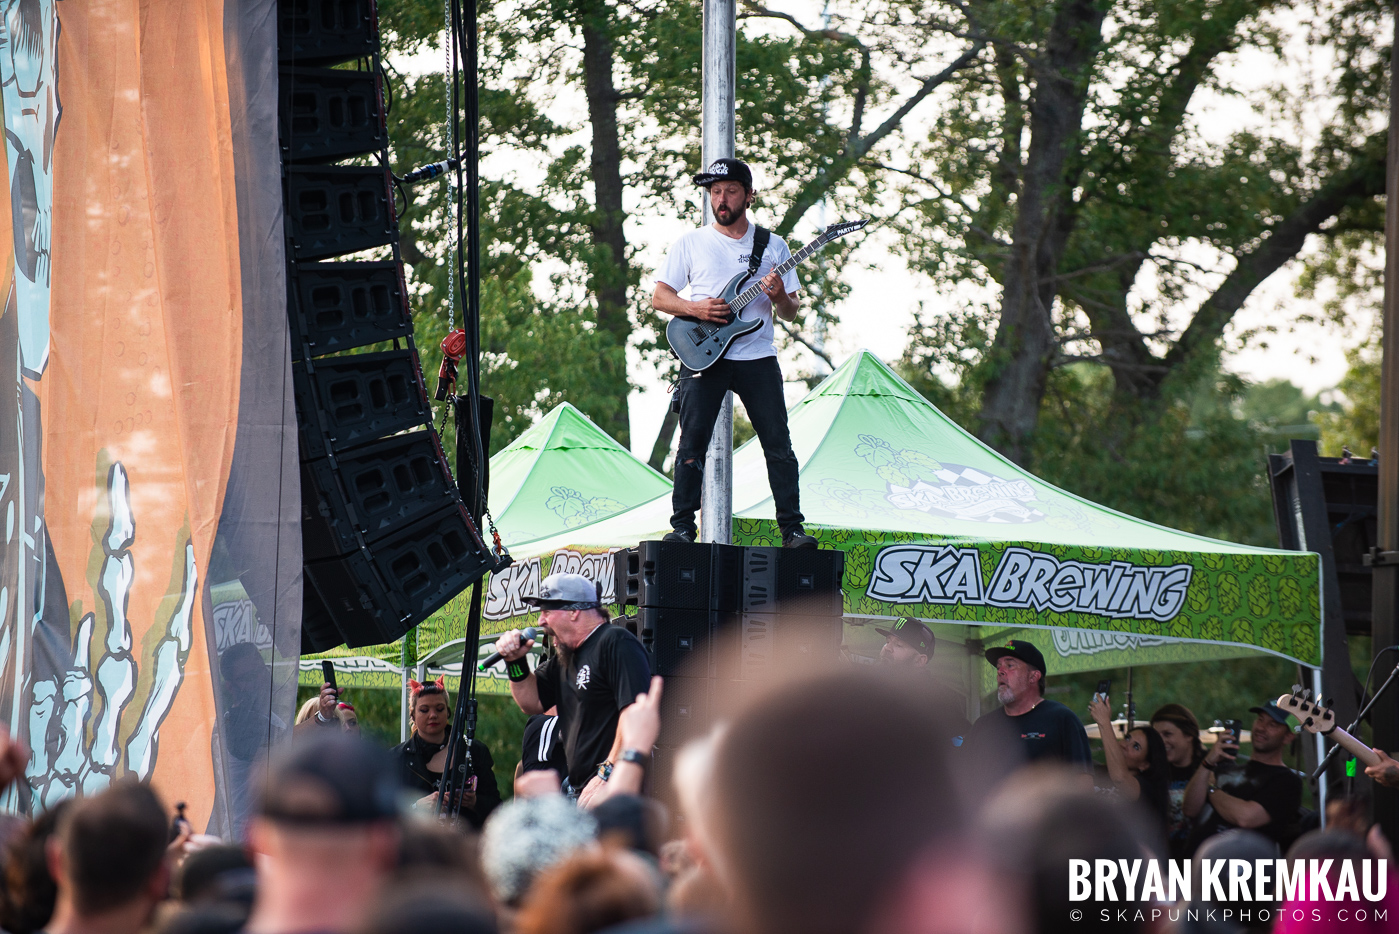 Suicidal Tendencies @ The Bash Music & Craft Beer Festival, Old Bridge Township Raceway Park, Englishtown, NJ - 6.2.19 (1)